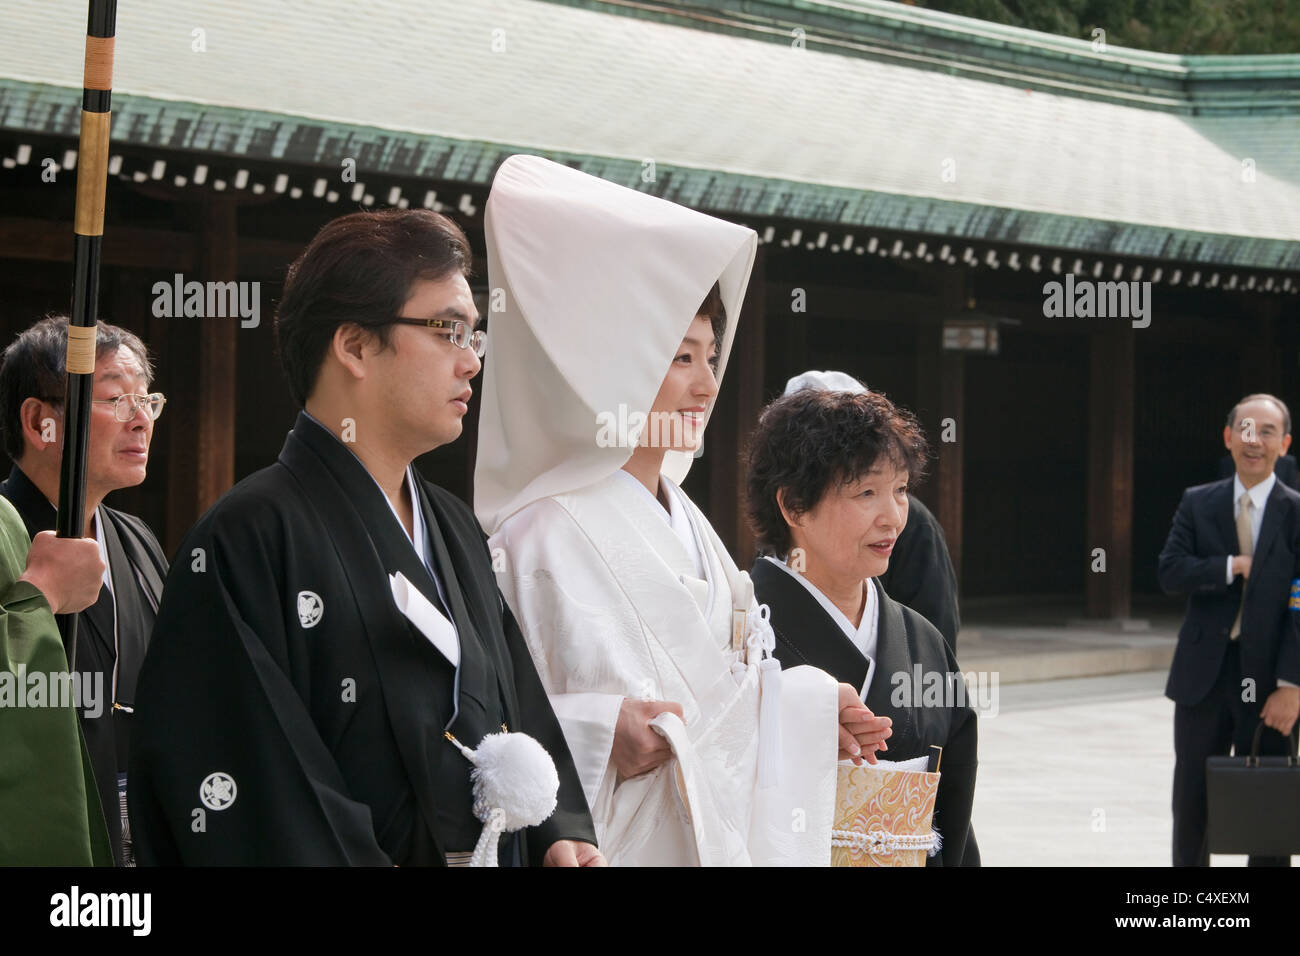 Bride, groom and other wedding party members and spectator at Meiji-jingu shrine, Shibuya, Tokyo, Japan, Asia. - Stock Image